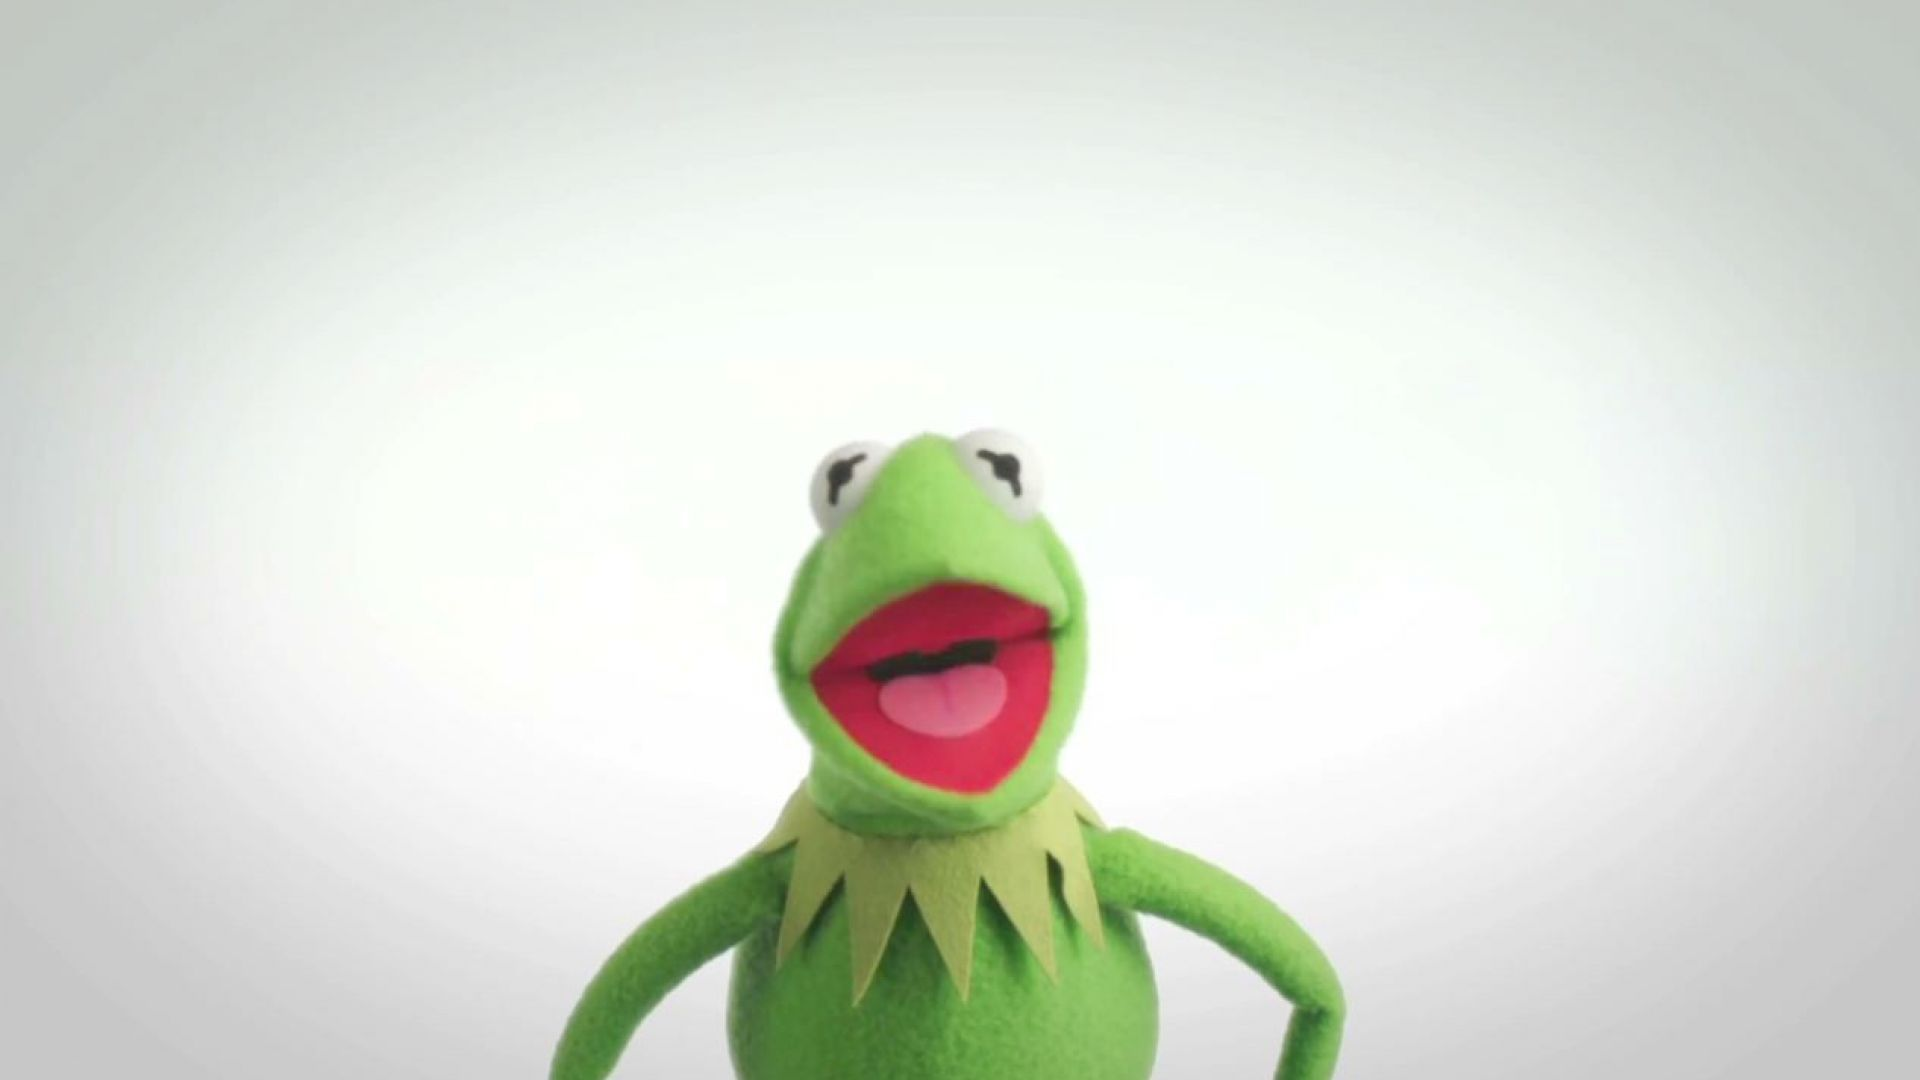 Kermit says it's still not easy being green, but you can help